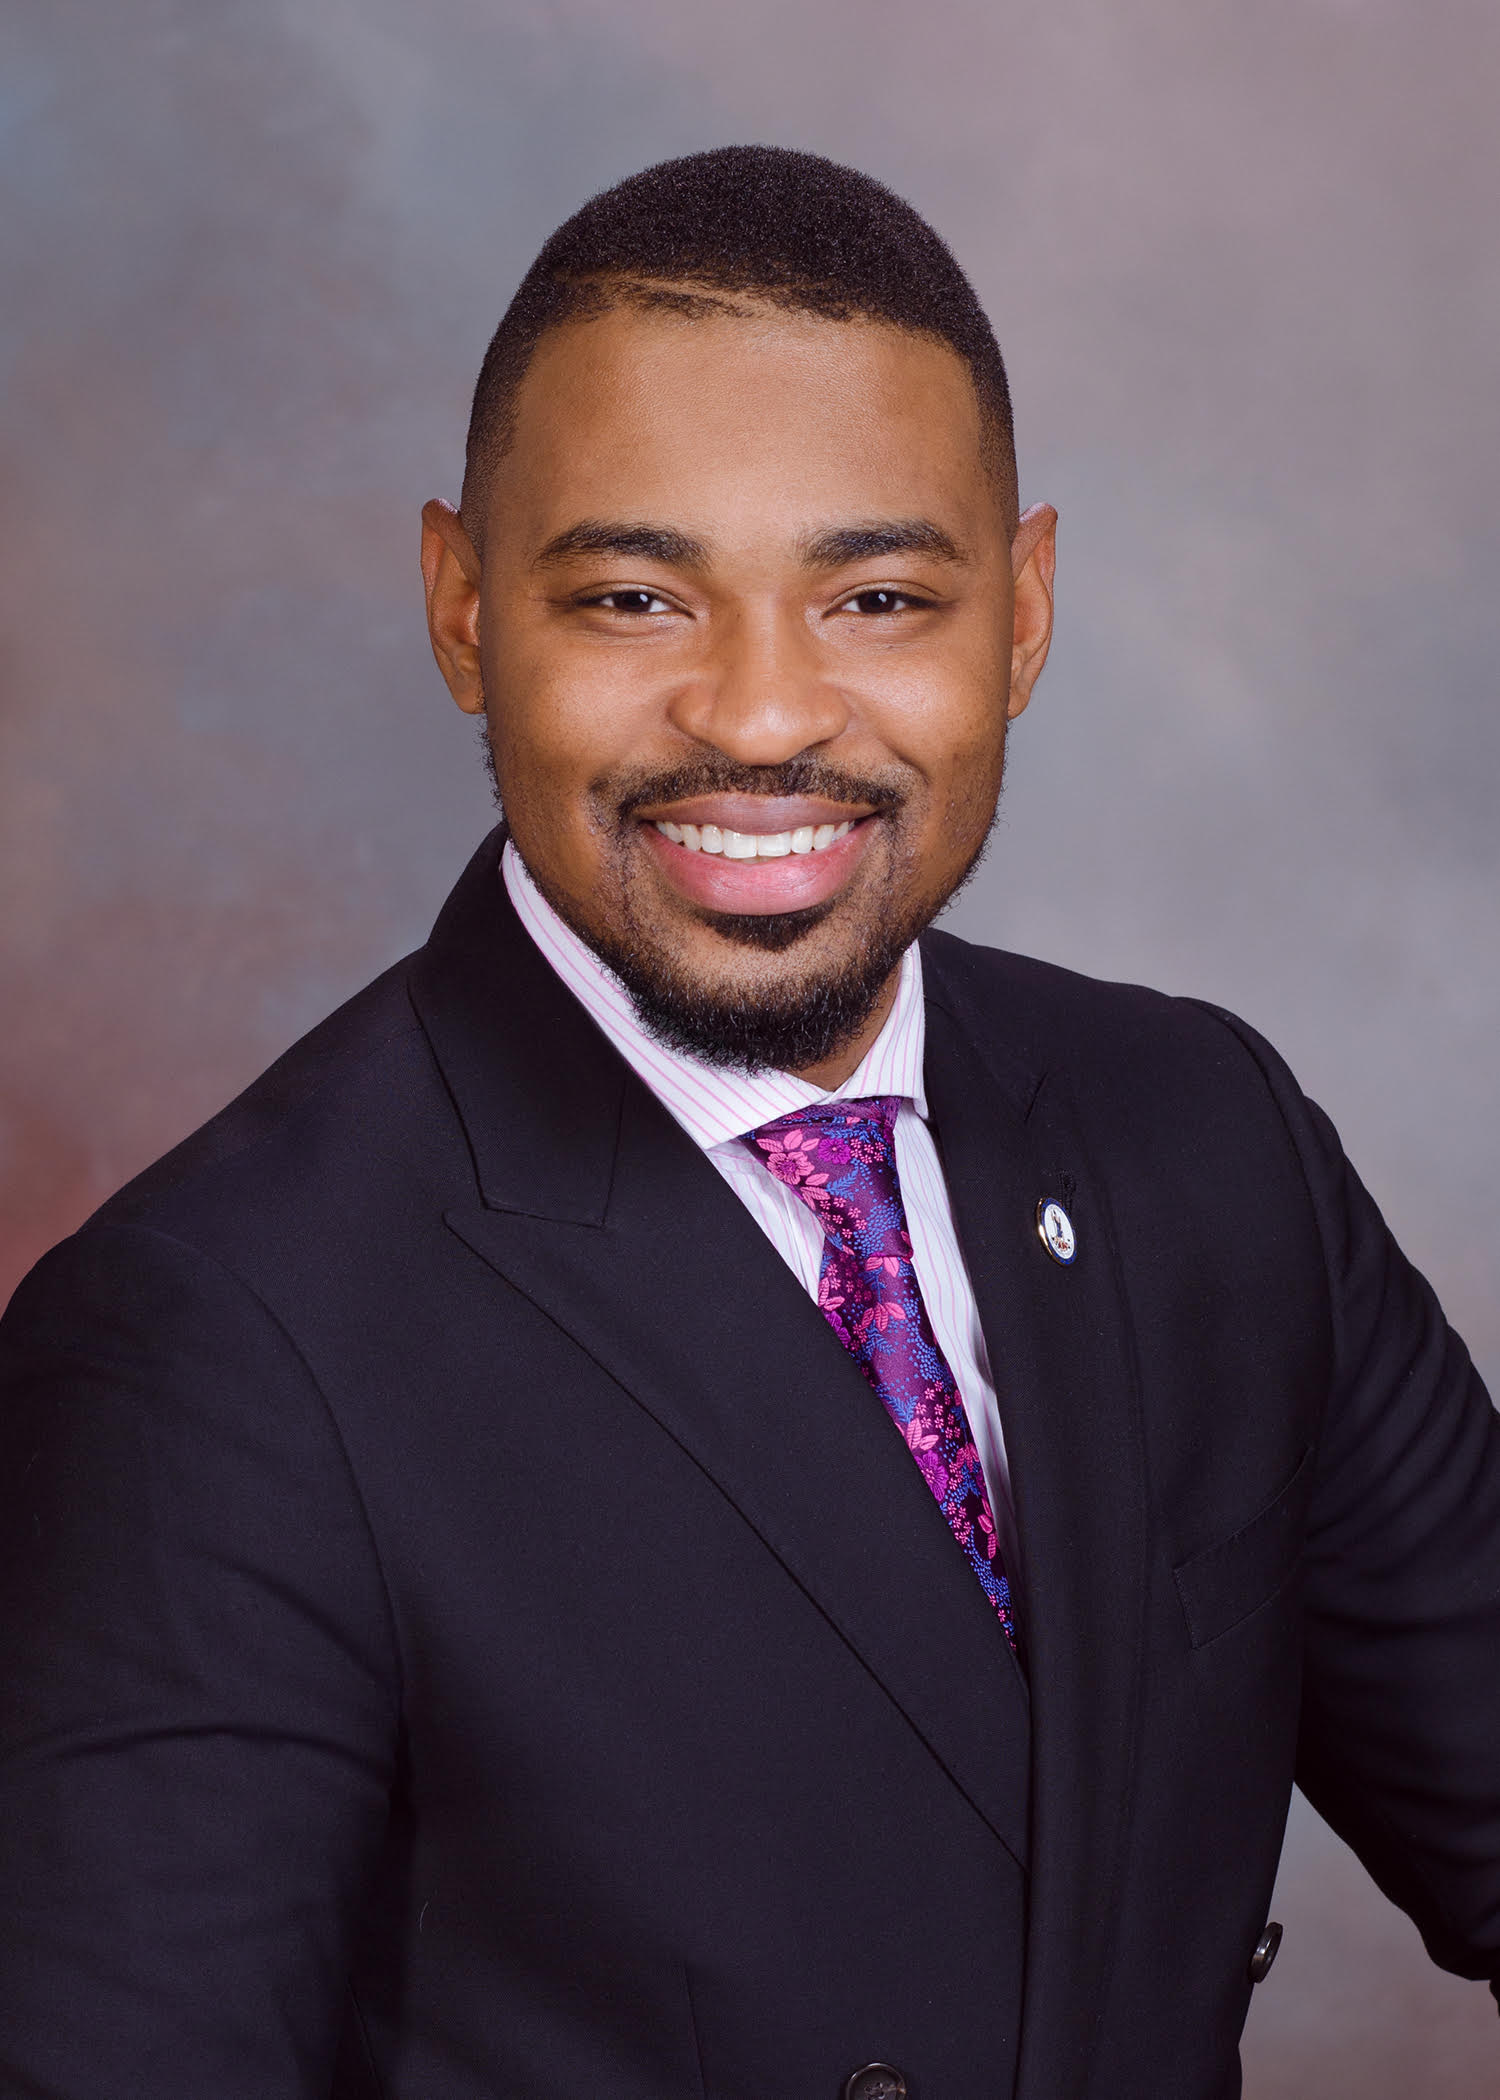 28-year-old Joshua Cole is first African American and youngest candidate to ever run for Virginia's House of Delegates 28th district. In a legislature that's long been an ol' boys club, he's bucking the system to represent the diverse voices in Virginia. -